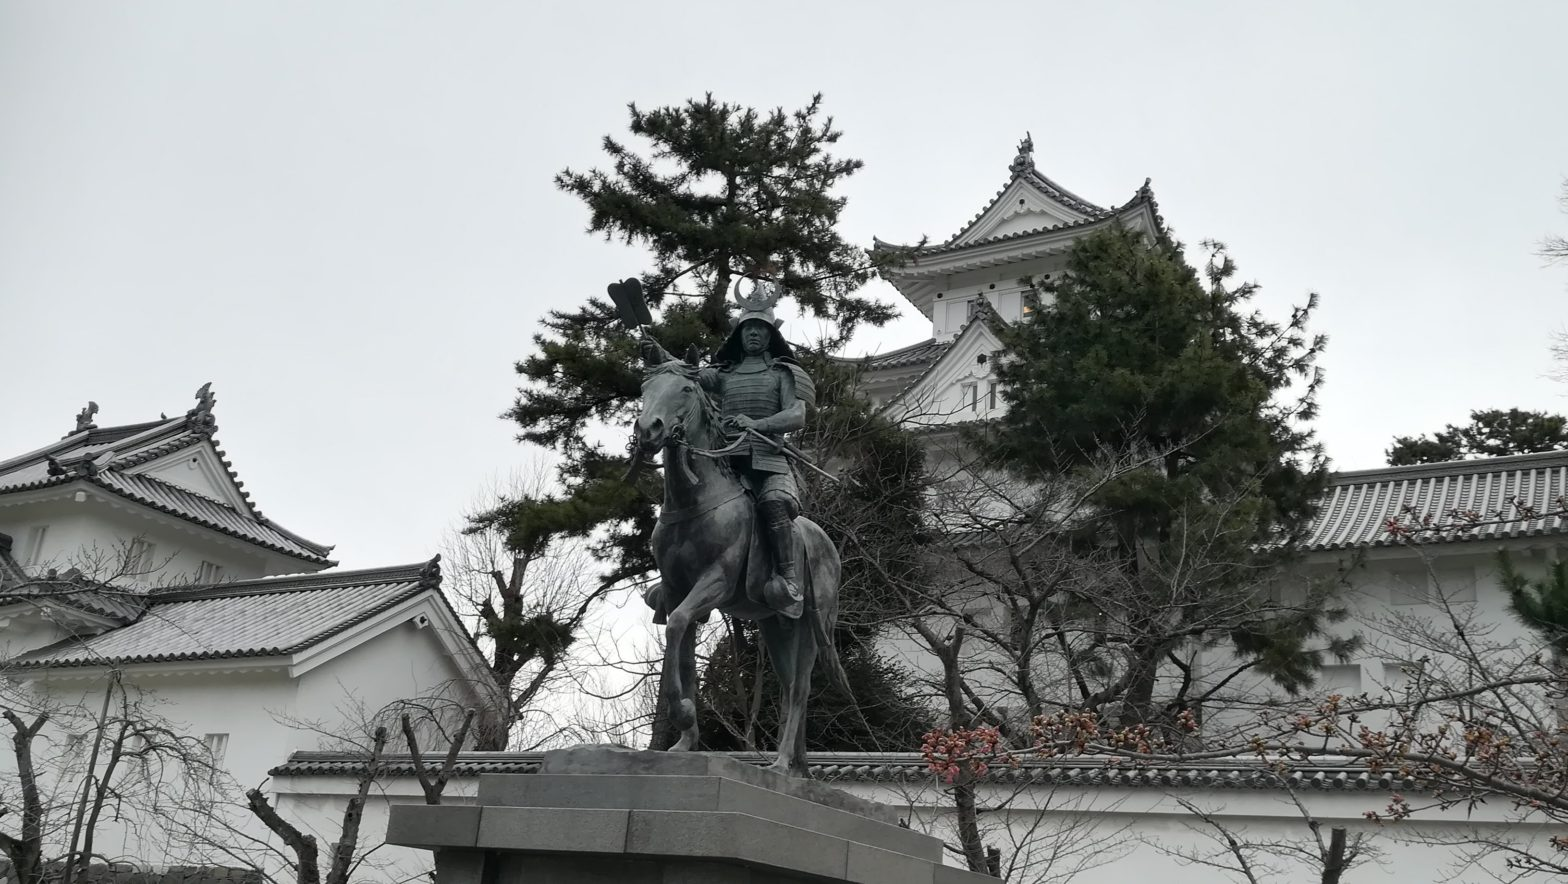 大垣城と銅像と松の樹 Ogaki Castle, statue and pine tree